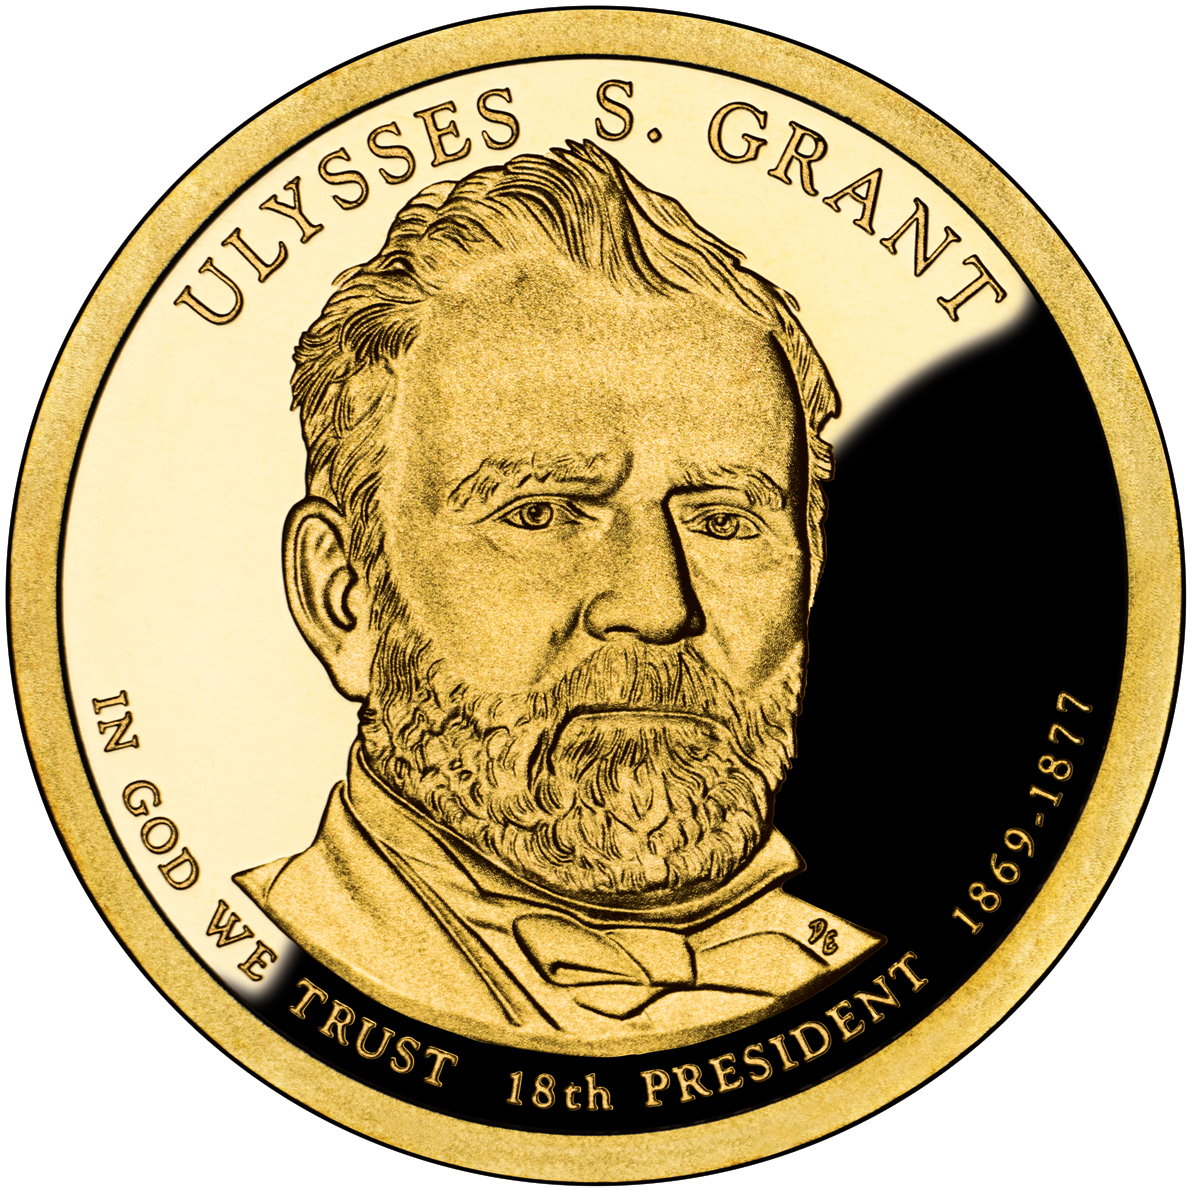 2011 Presidential Dollar Coin James Garfield Proof Obverse